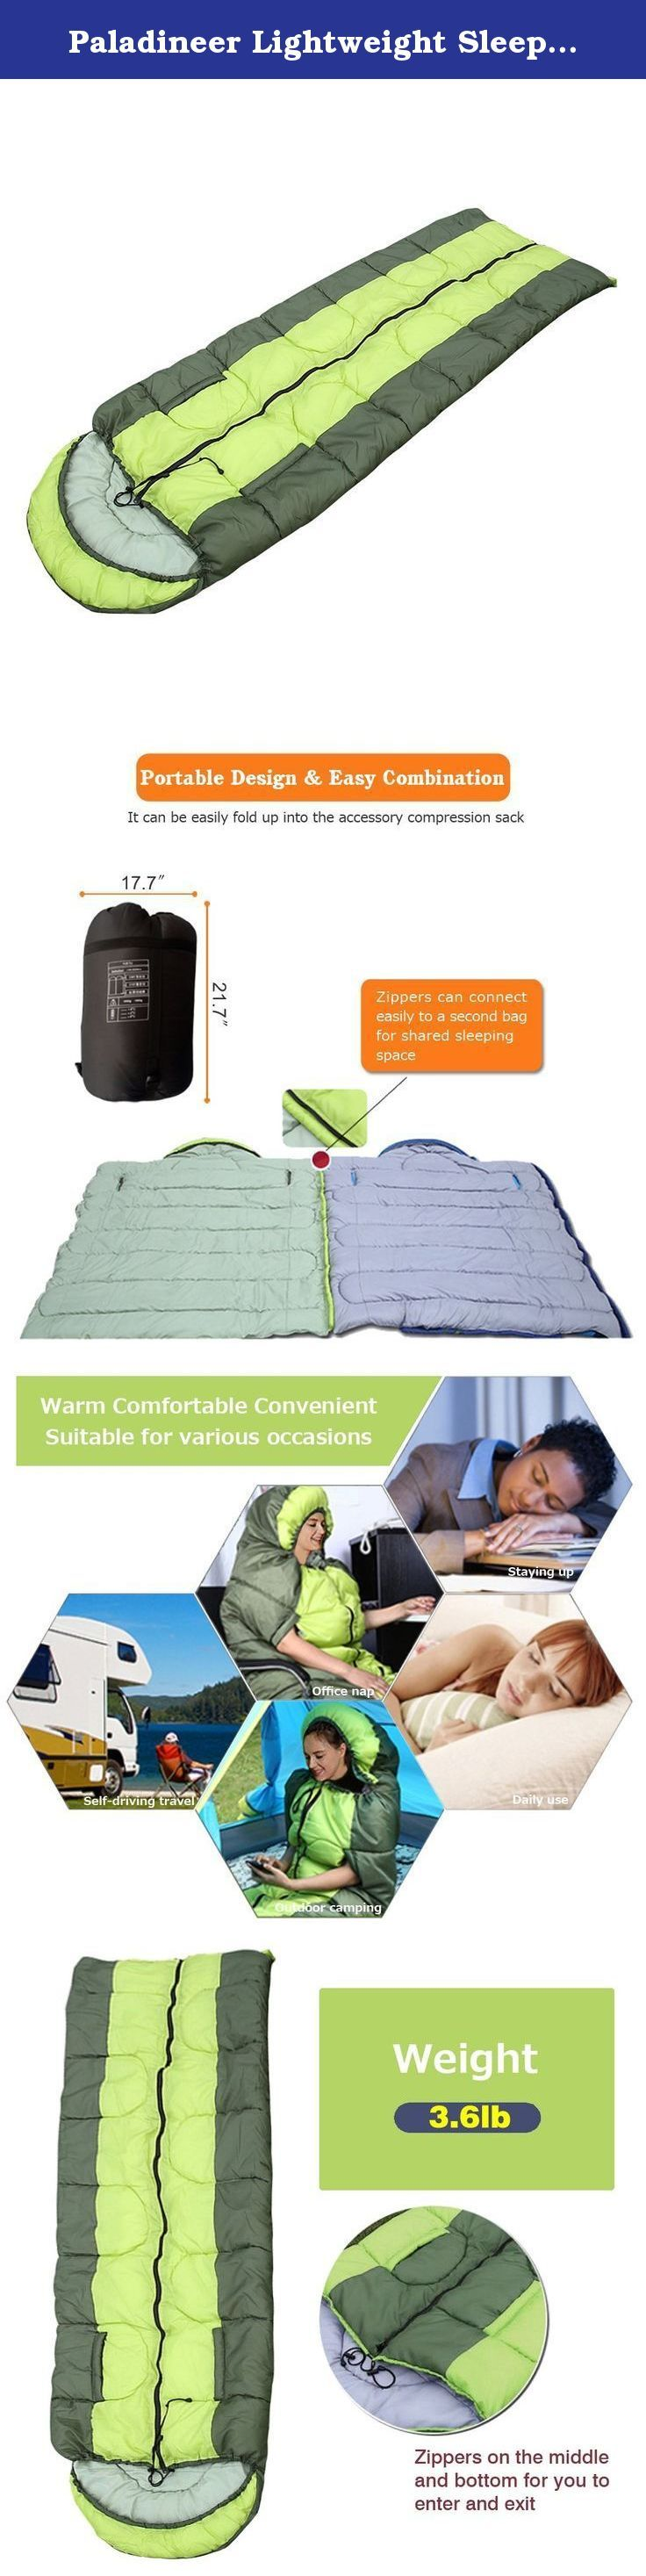 Paladineer Lightweight Sleeping Bag For Travel Outdoor Camping Hiking Green. Paladineer sleeping bag is ergonomic designed, high quality and comfortable. Excellent quality comes from every perfect detail! Two patterns are provided to meet different needs, but they have some advantages in common. Product Specification: *Colors: Blue, green *Weight: 3.6lb *Package included: 1 x sleeping bag, 1x compression sack Material Configuration: *Super soft and breathable material provides you a...